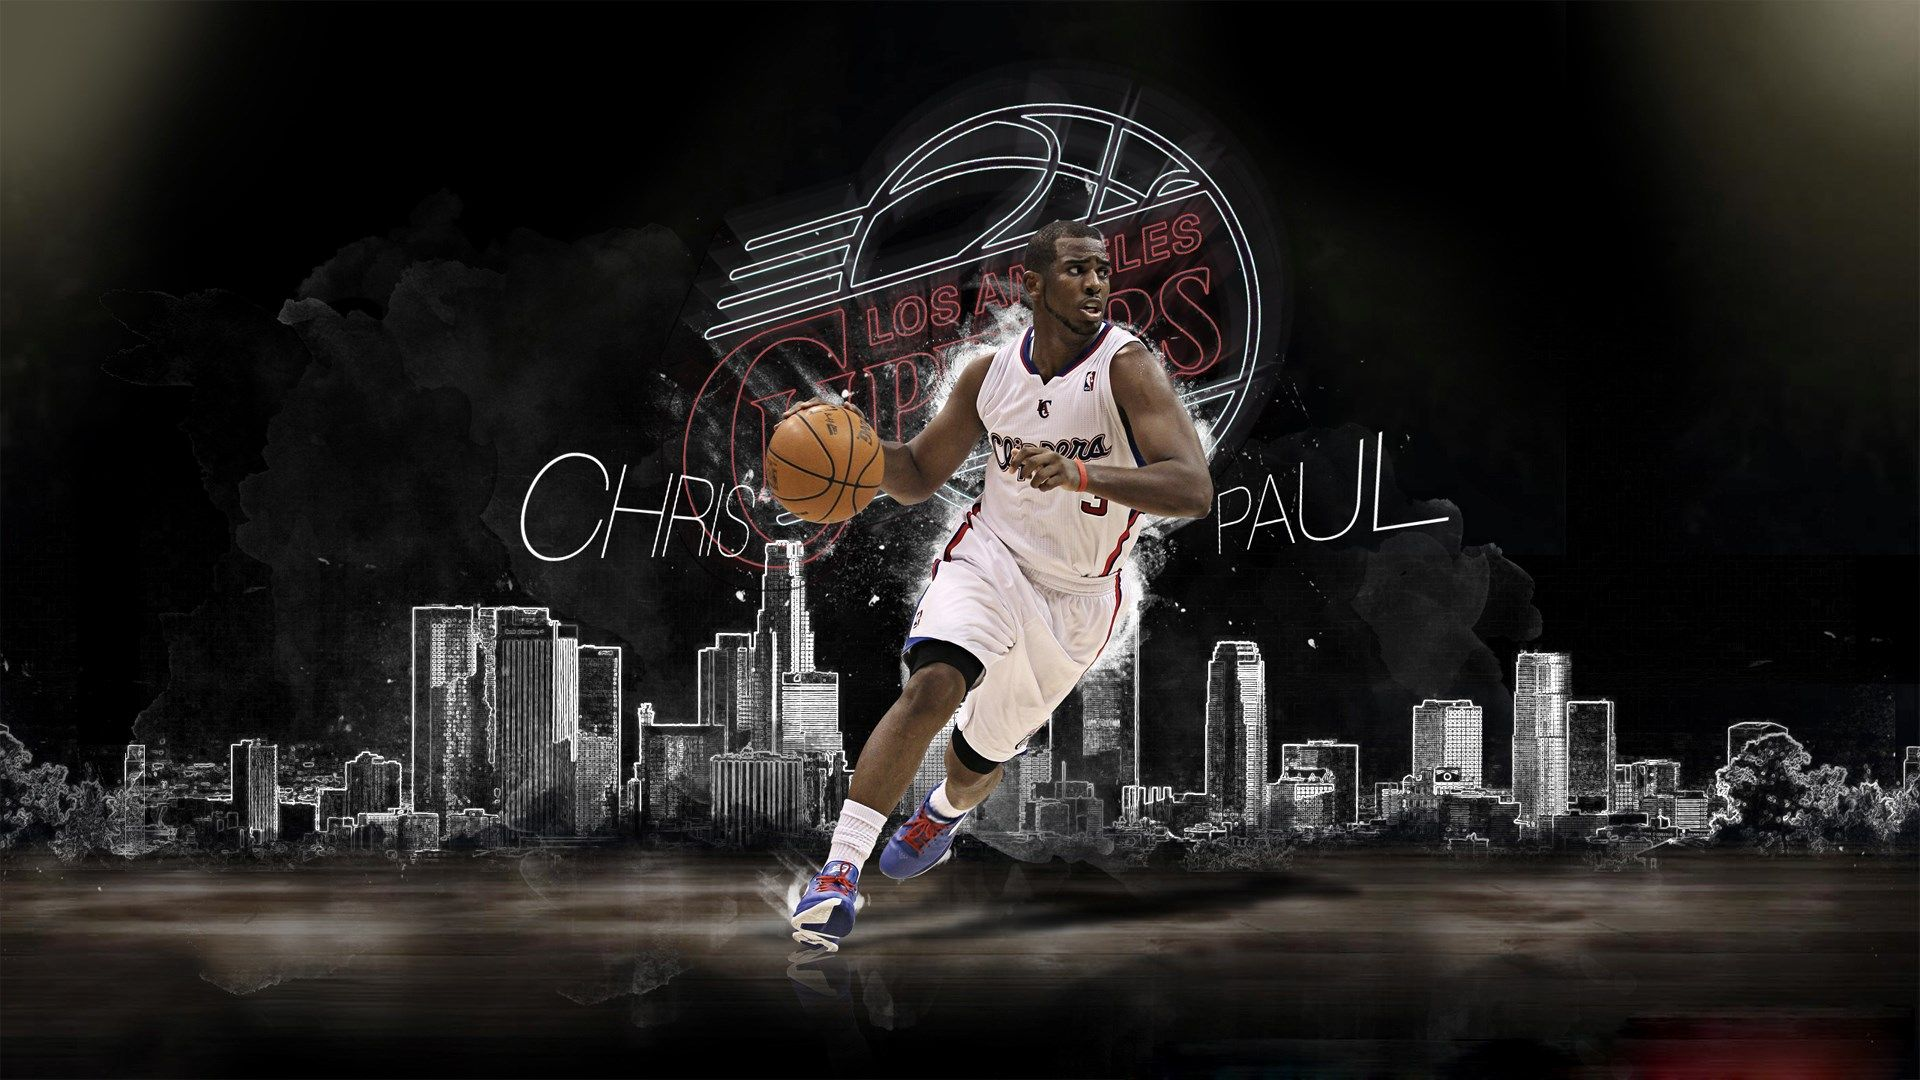 Chris Paul Clippers Comeback Wallpaper